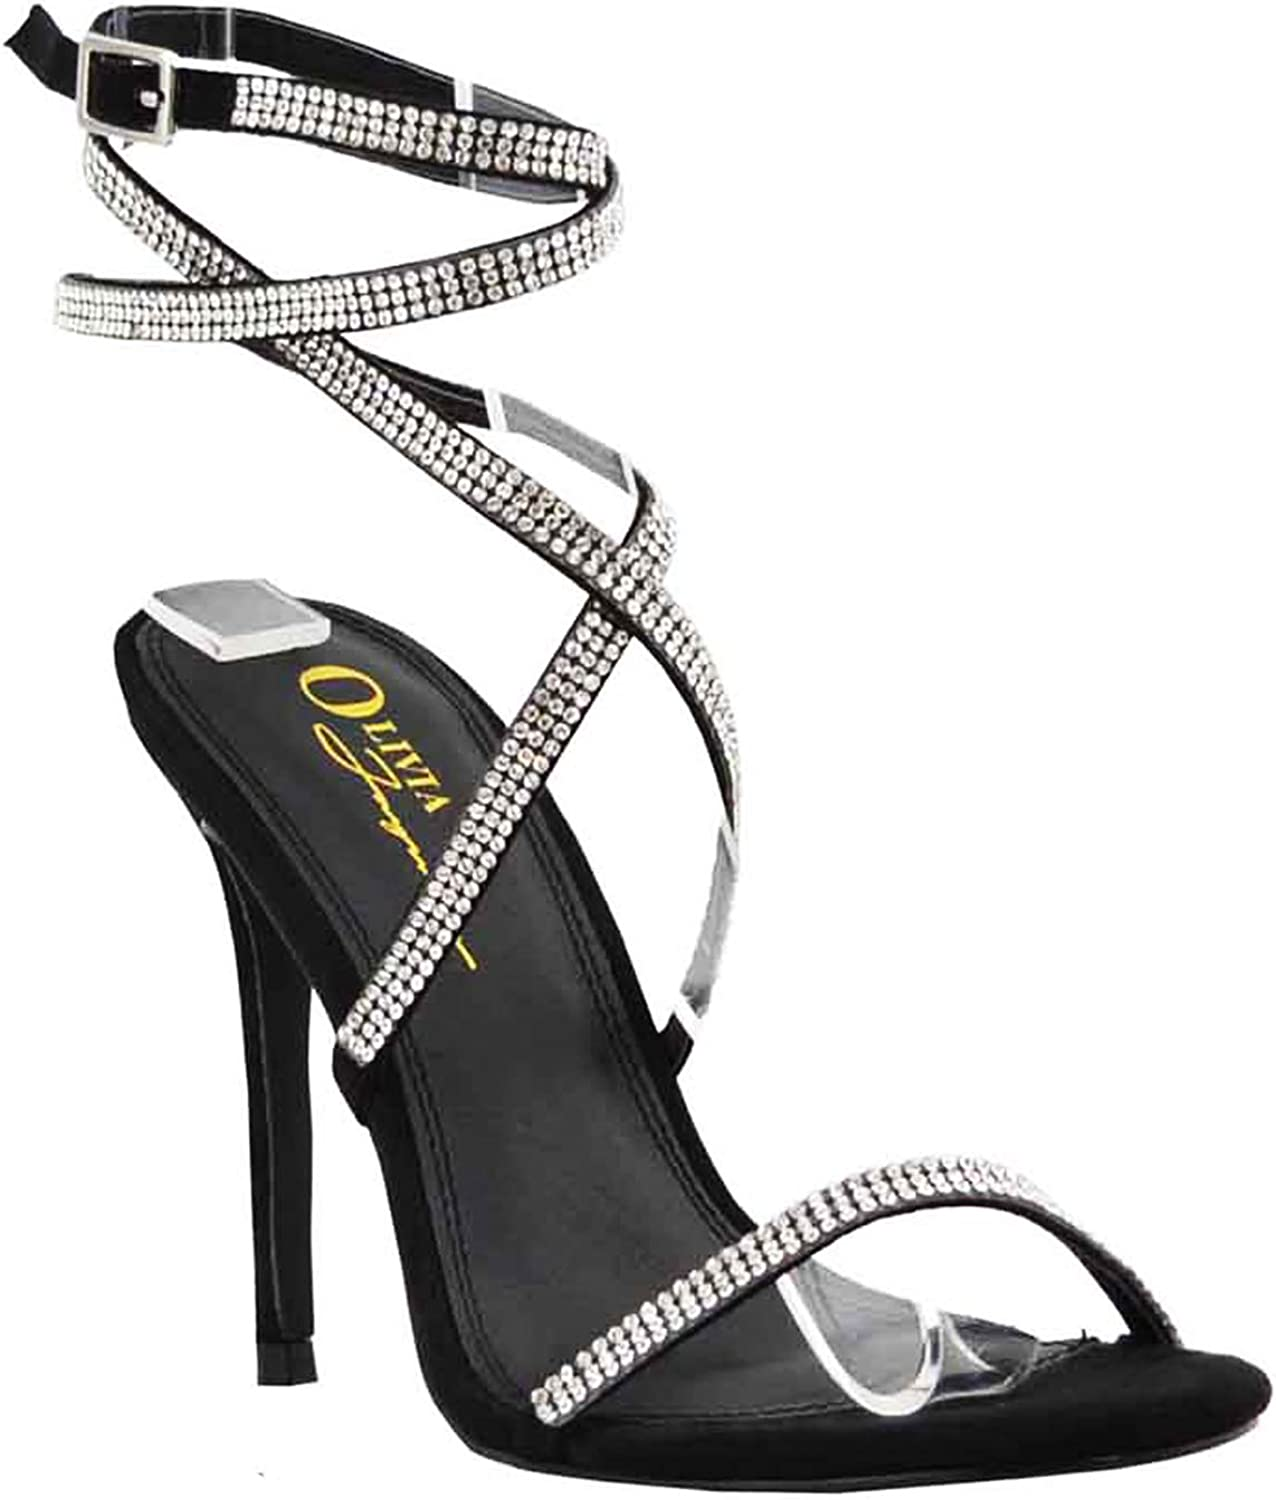 Olivia and Jaymes Women's Embellished Rhinestone Strappy Crisscross Ankle Strap Open Toe Stiletto Heel Sandal shoes